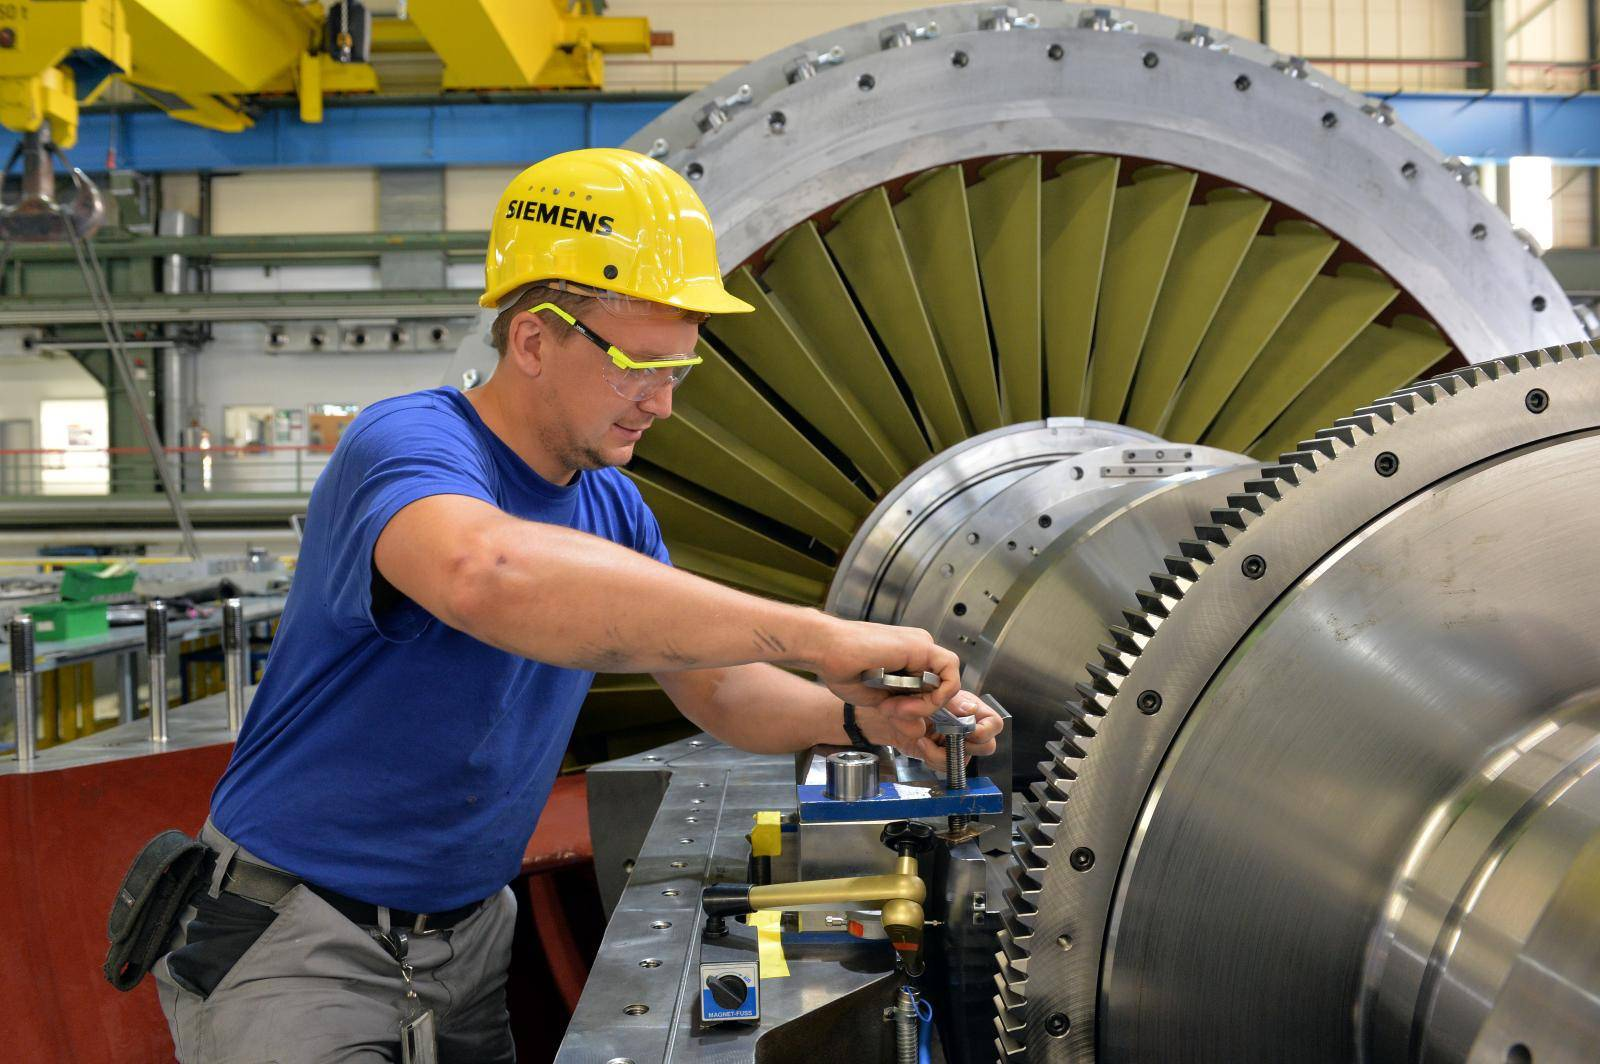 Industry production of gas turbines at Siemens